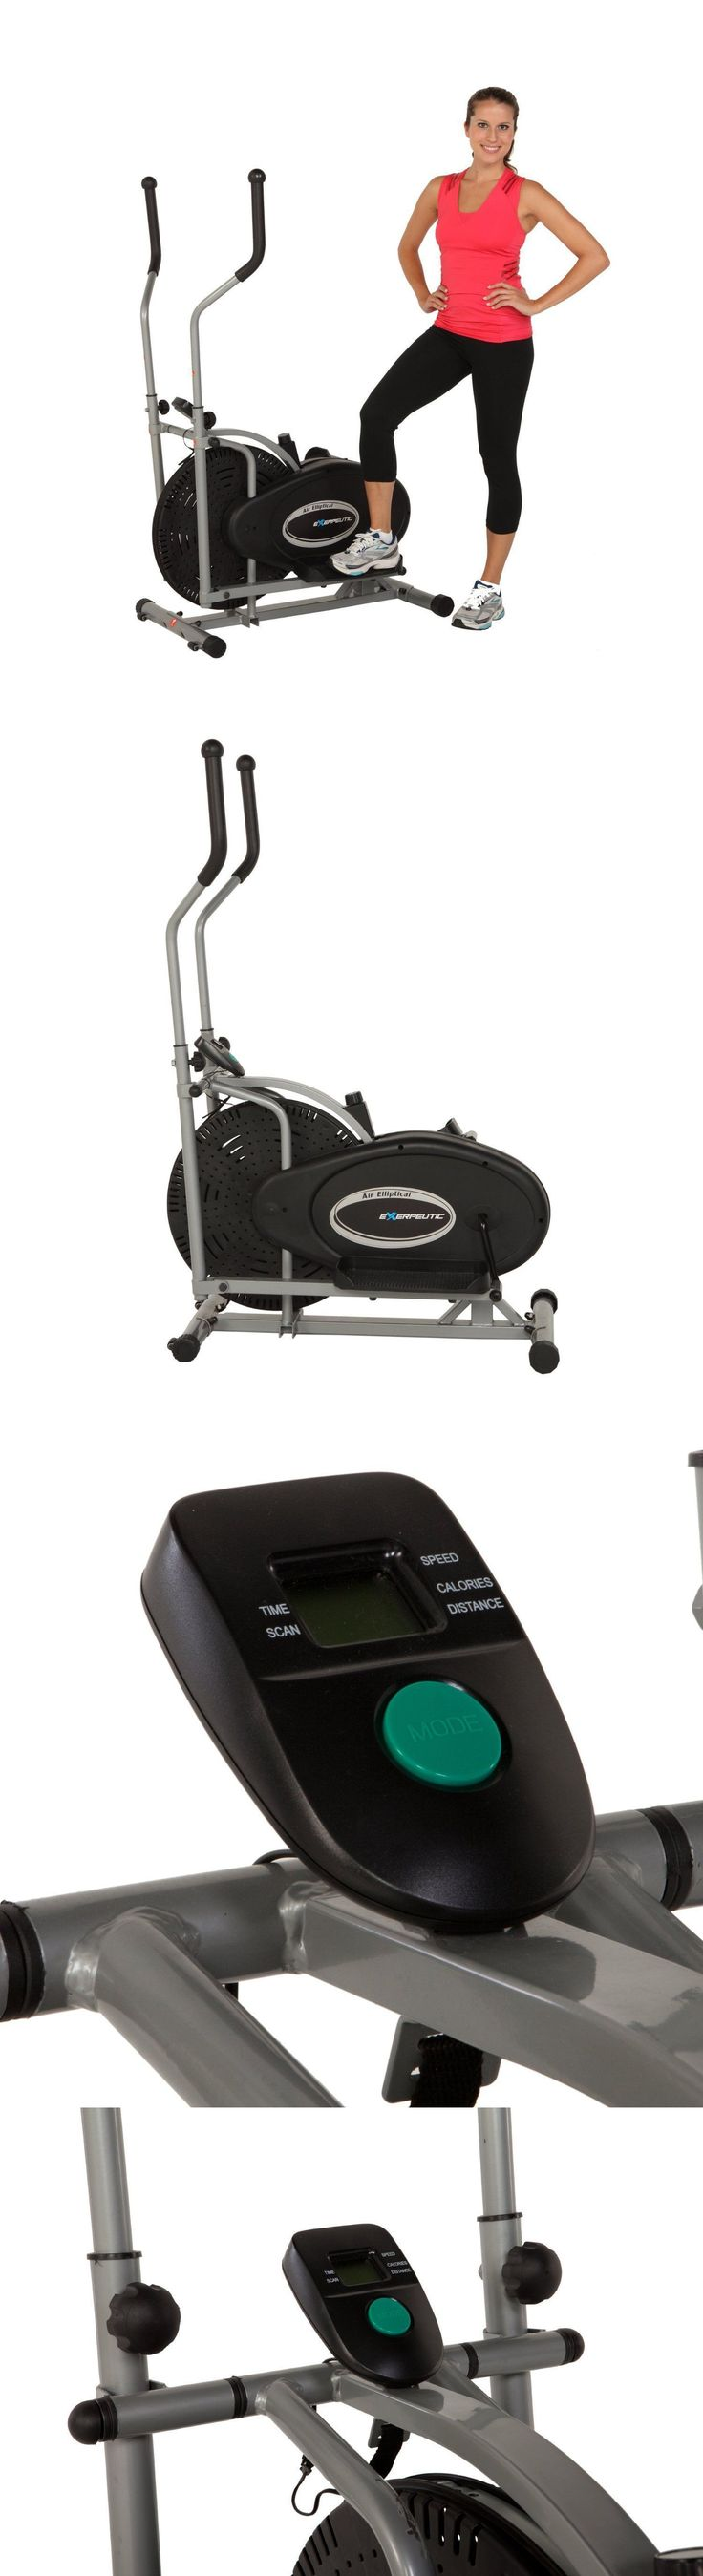 Ellipticals 72602: Elliptical Exercise Indoor Fitness Trainer Workout Machine Gym Equipment Cardio -> BUY IT NOW ONLY: $107.95 on eBay!